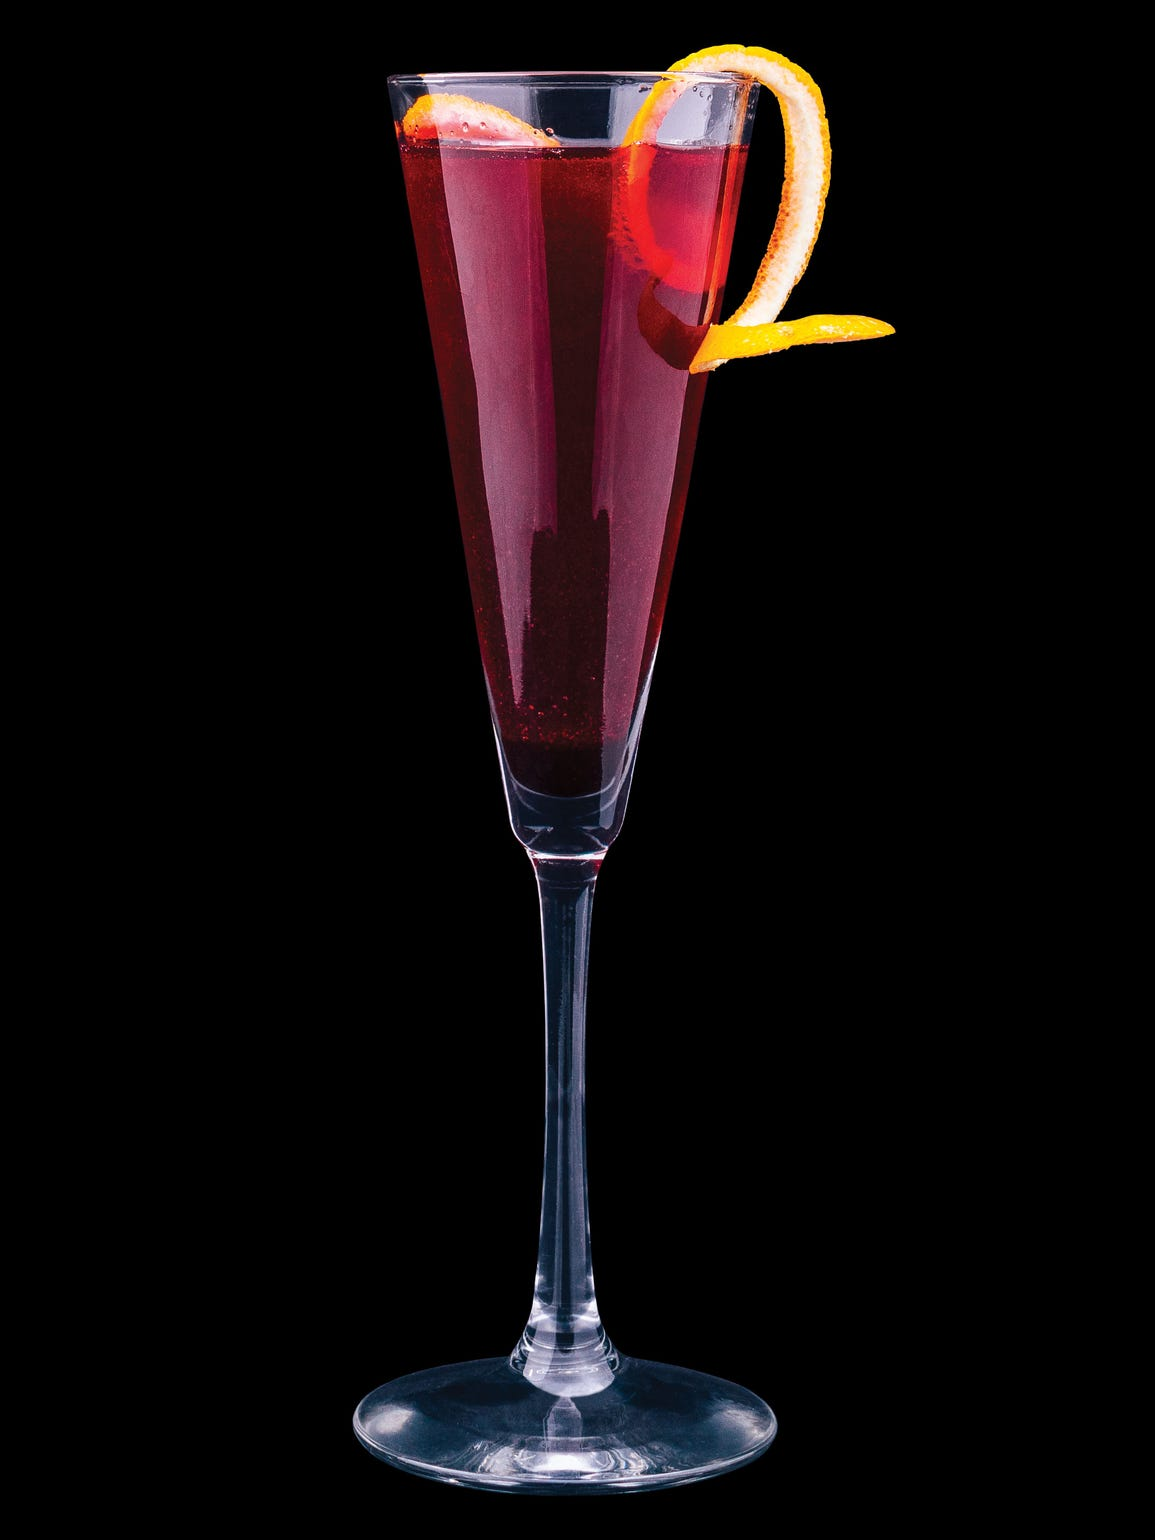 Raise A Glass Sparkling Drinks For New Year S